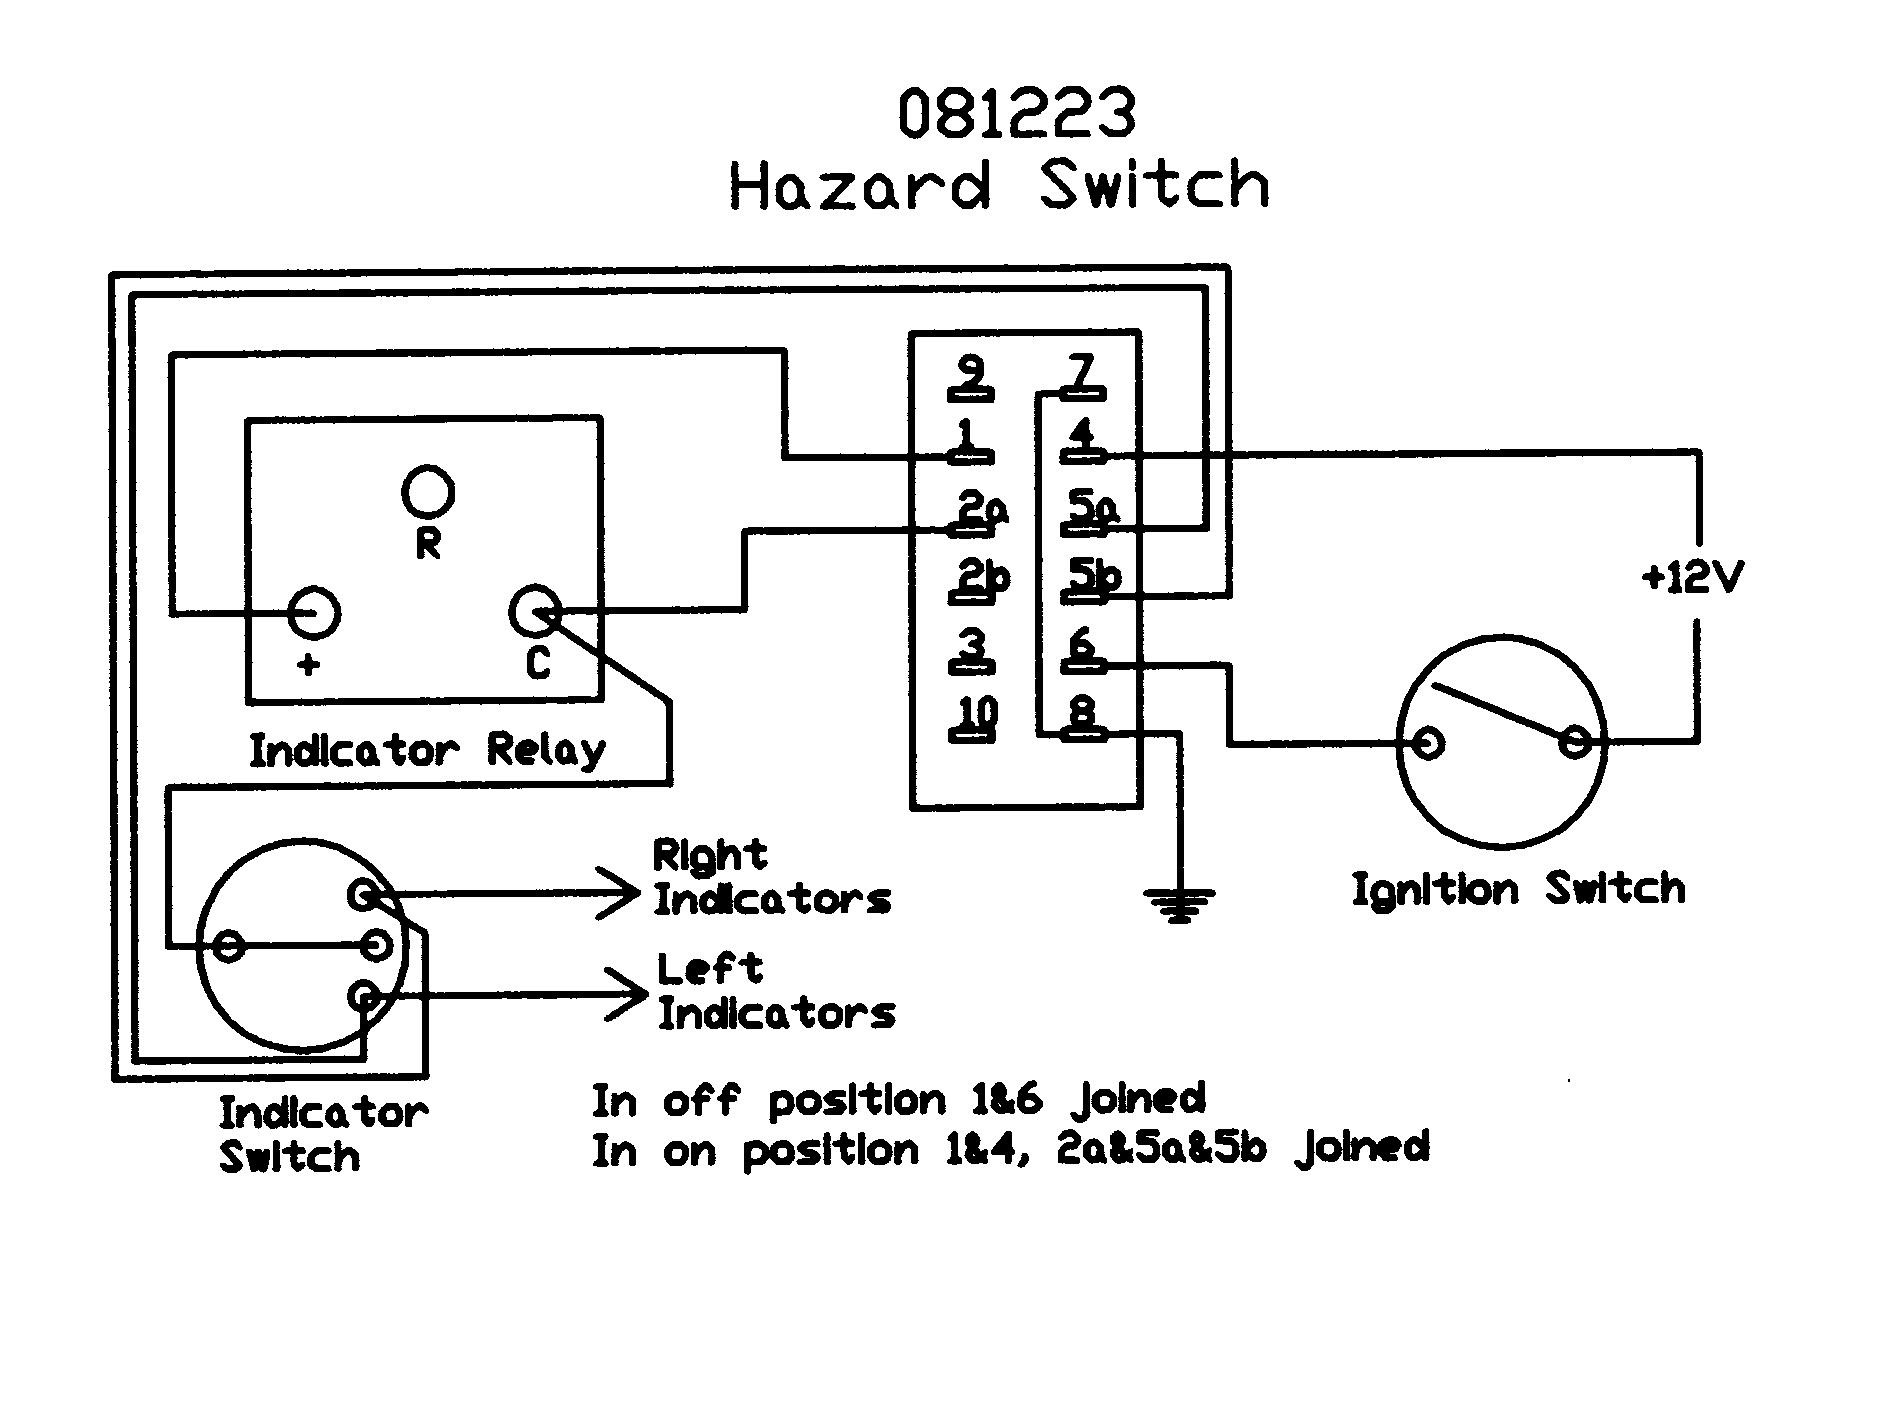 hight resolution of 1904x1424 rocker hazard switch